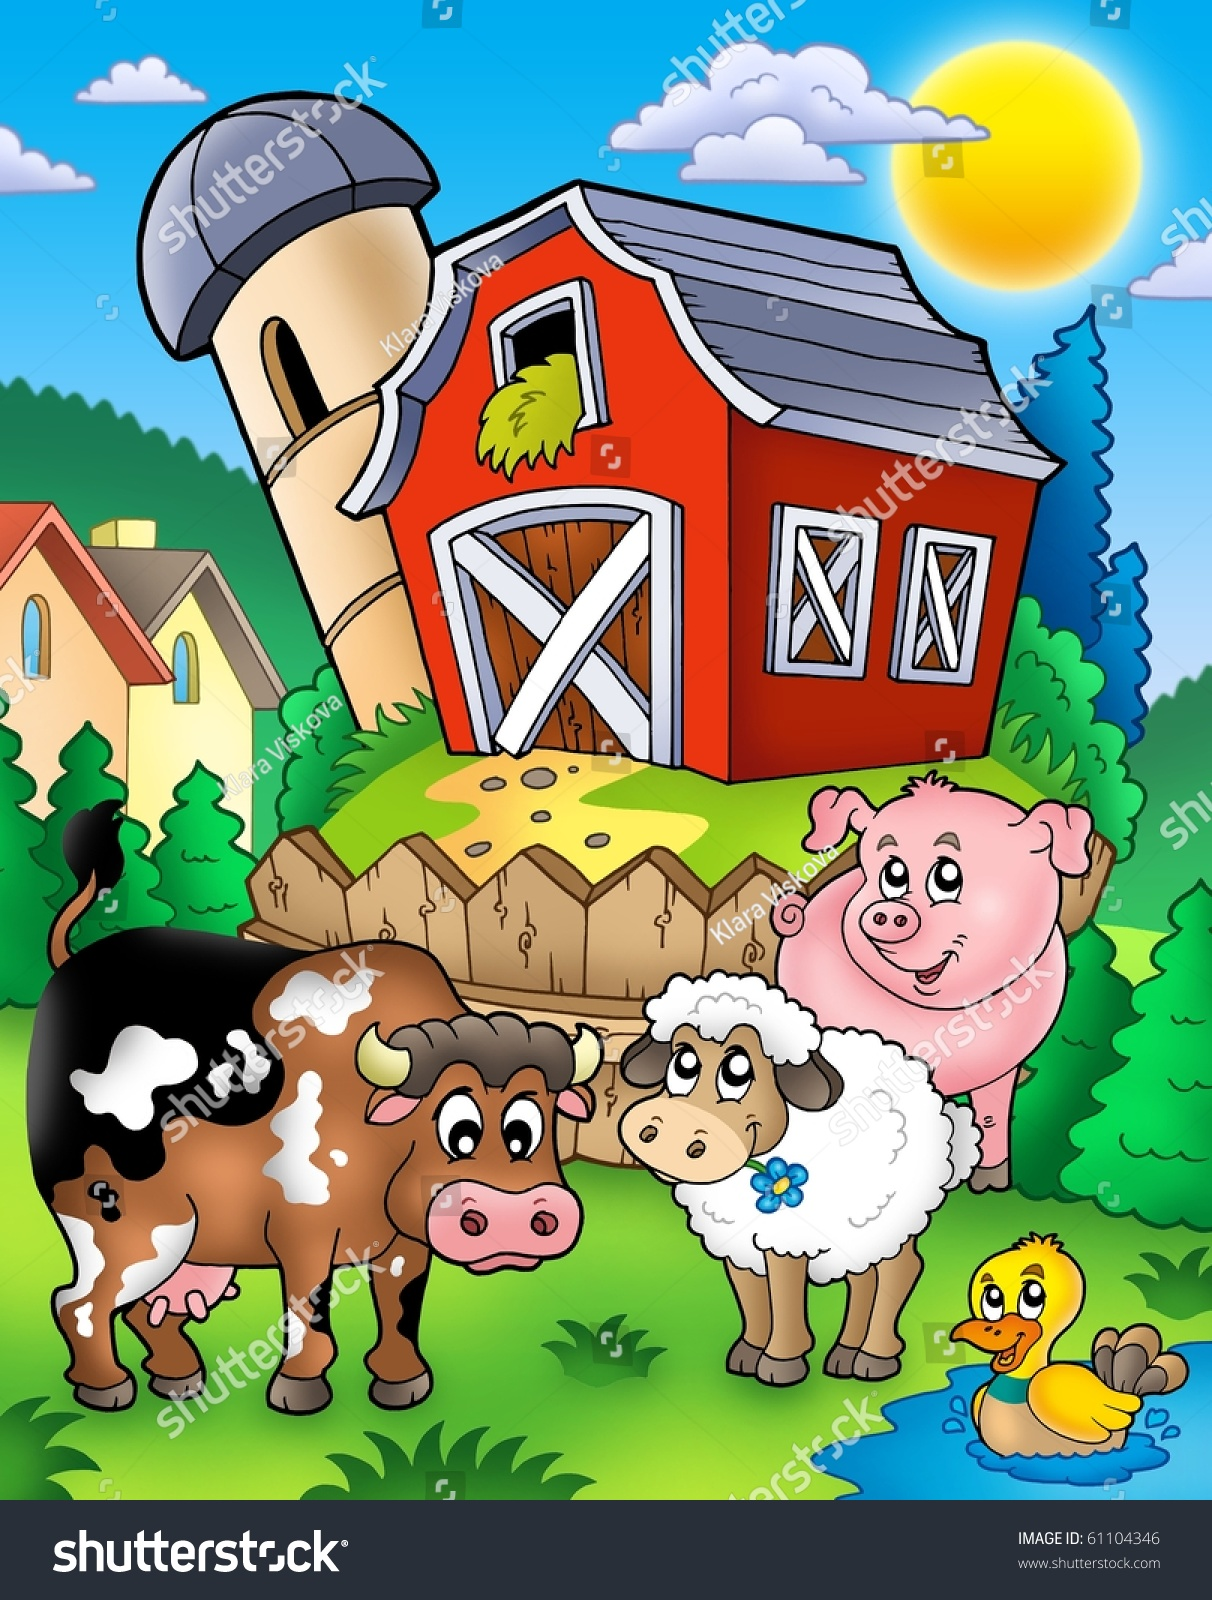 Barn and farm animal coloring pages - Farm Animals Near Barn Color Illustration